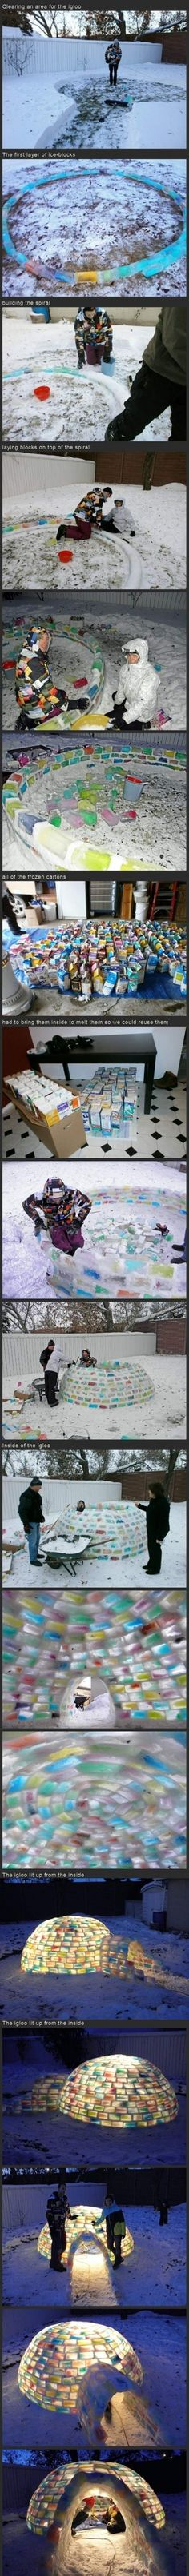 milk carton igloo - this is actually pretty cool :) I'm trying this today with foil bread pans